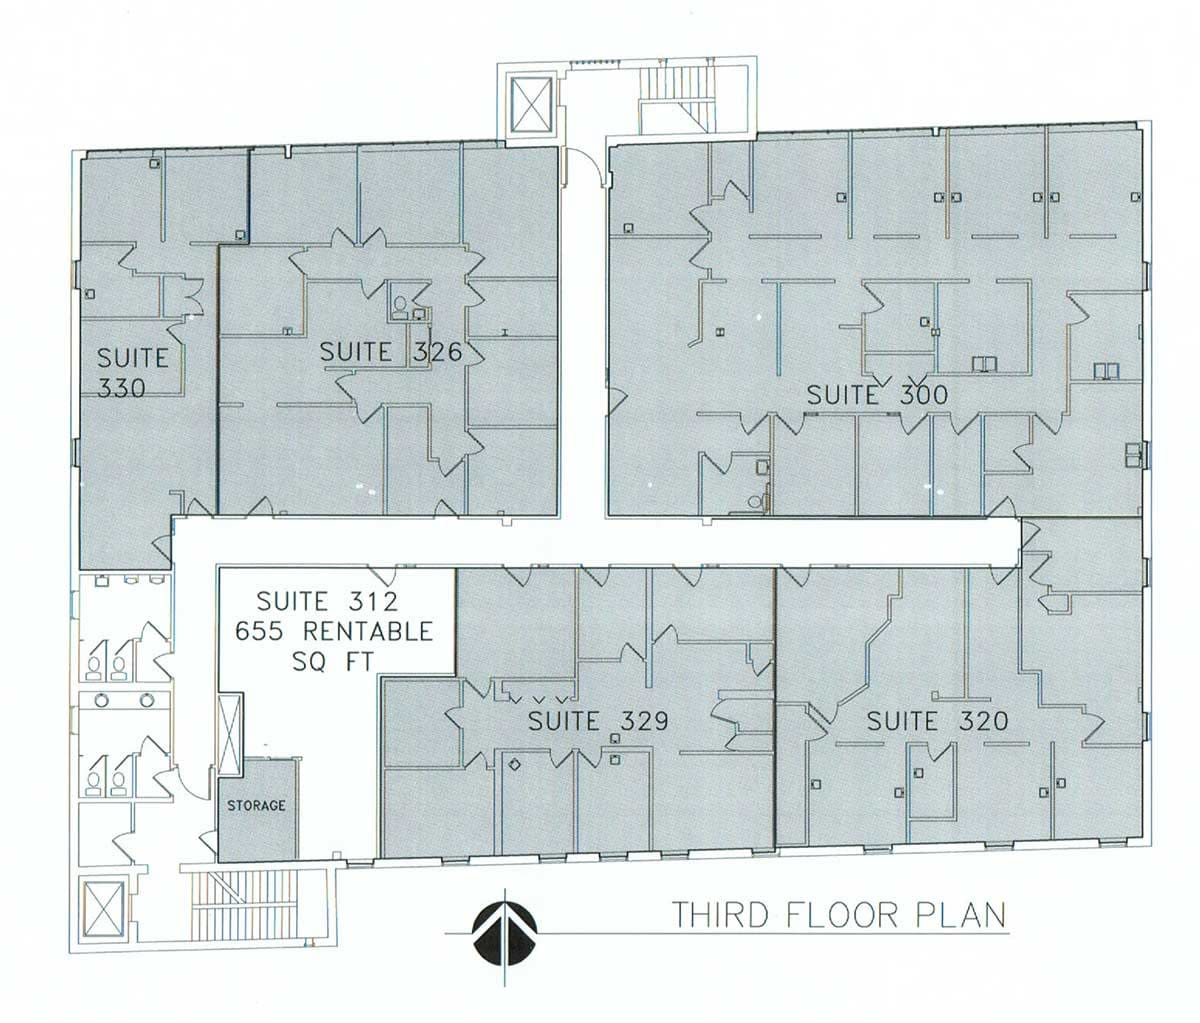 ThirdFloorPlan